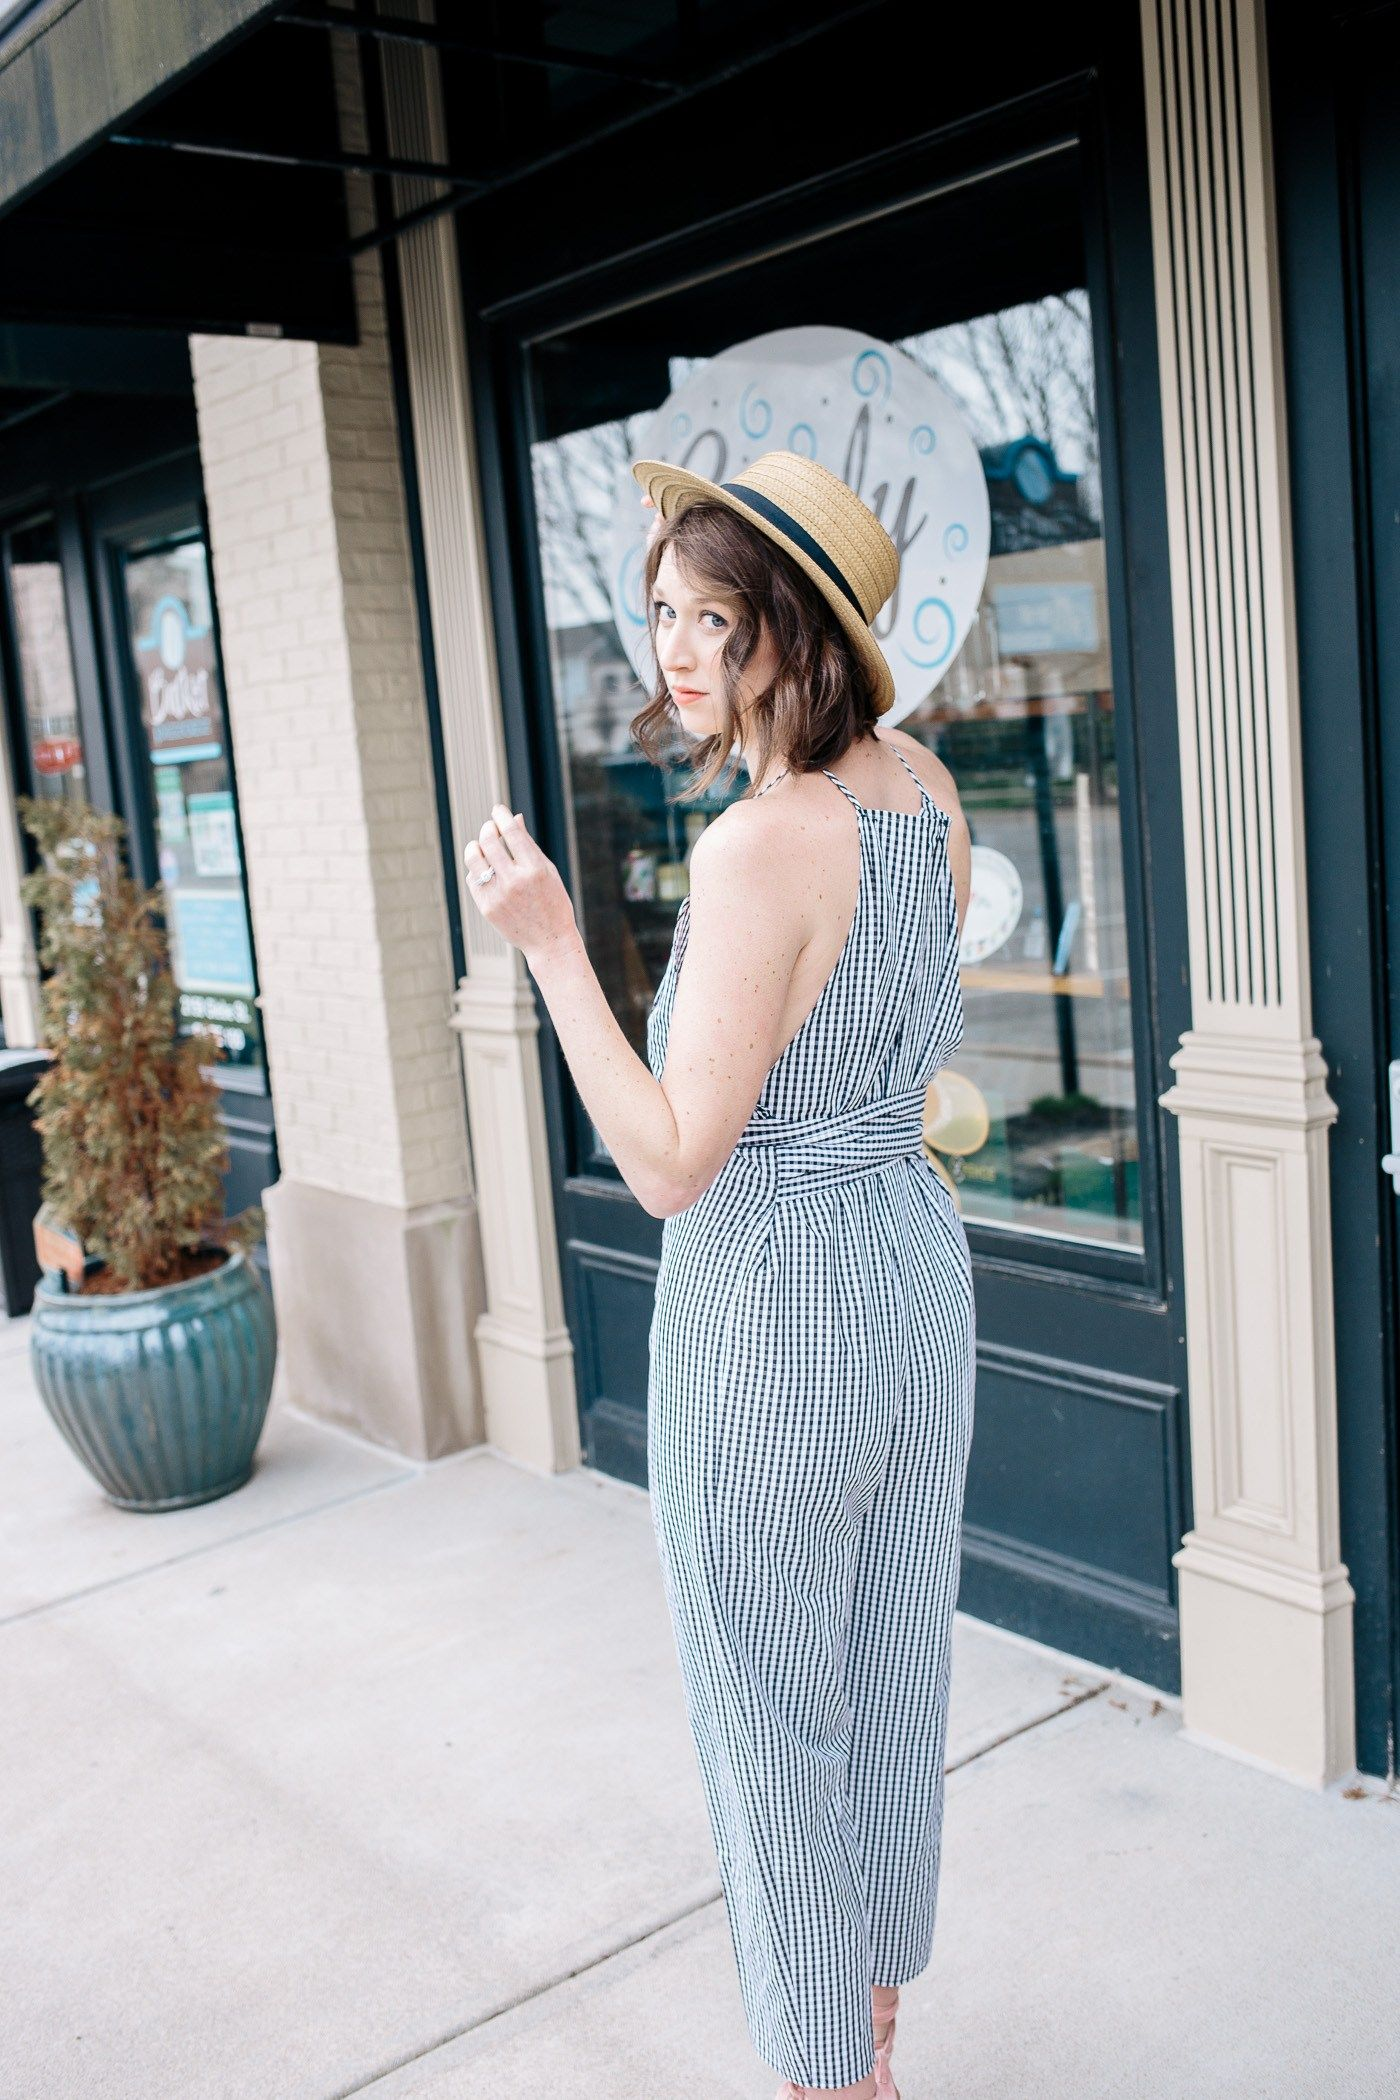 Check mate gingham outfit fashion inspo simple style